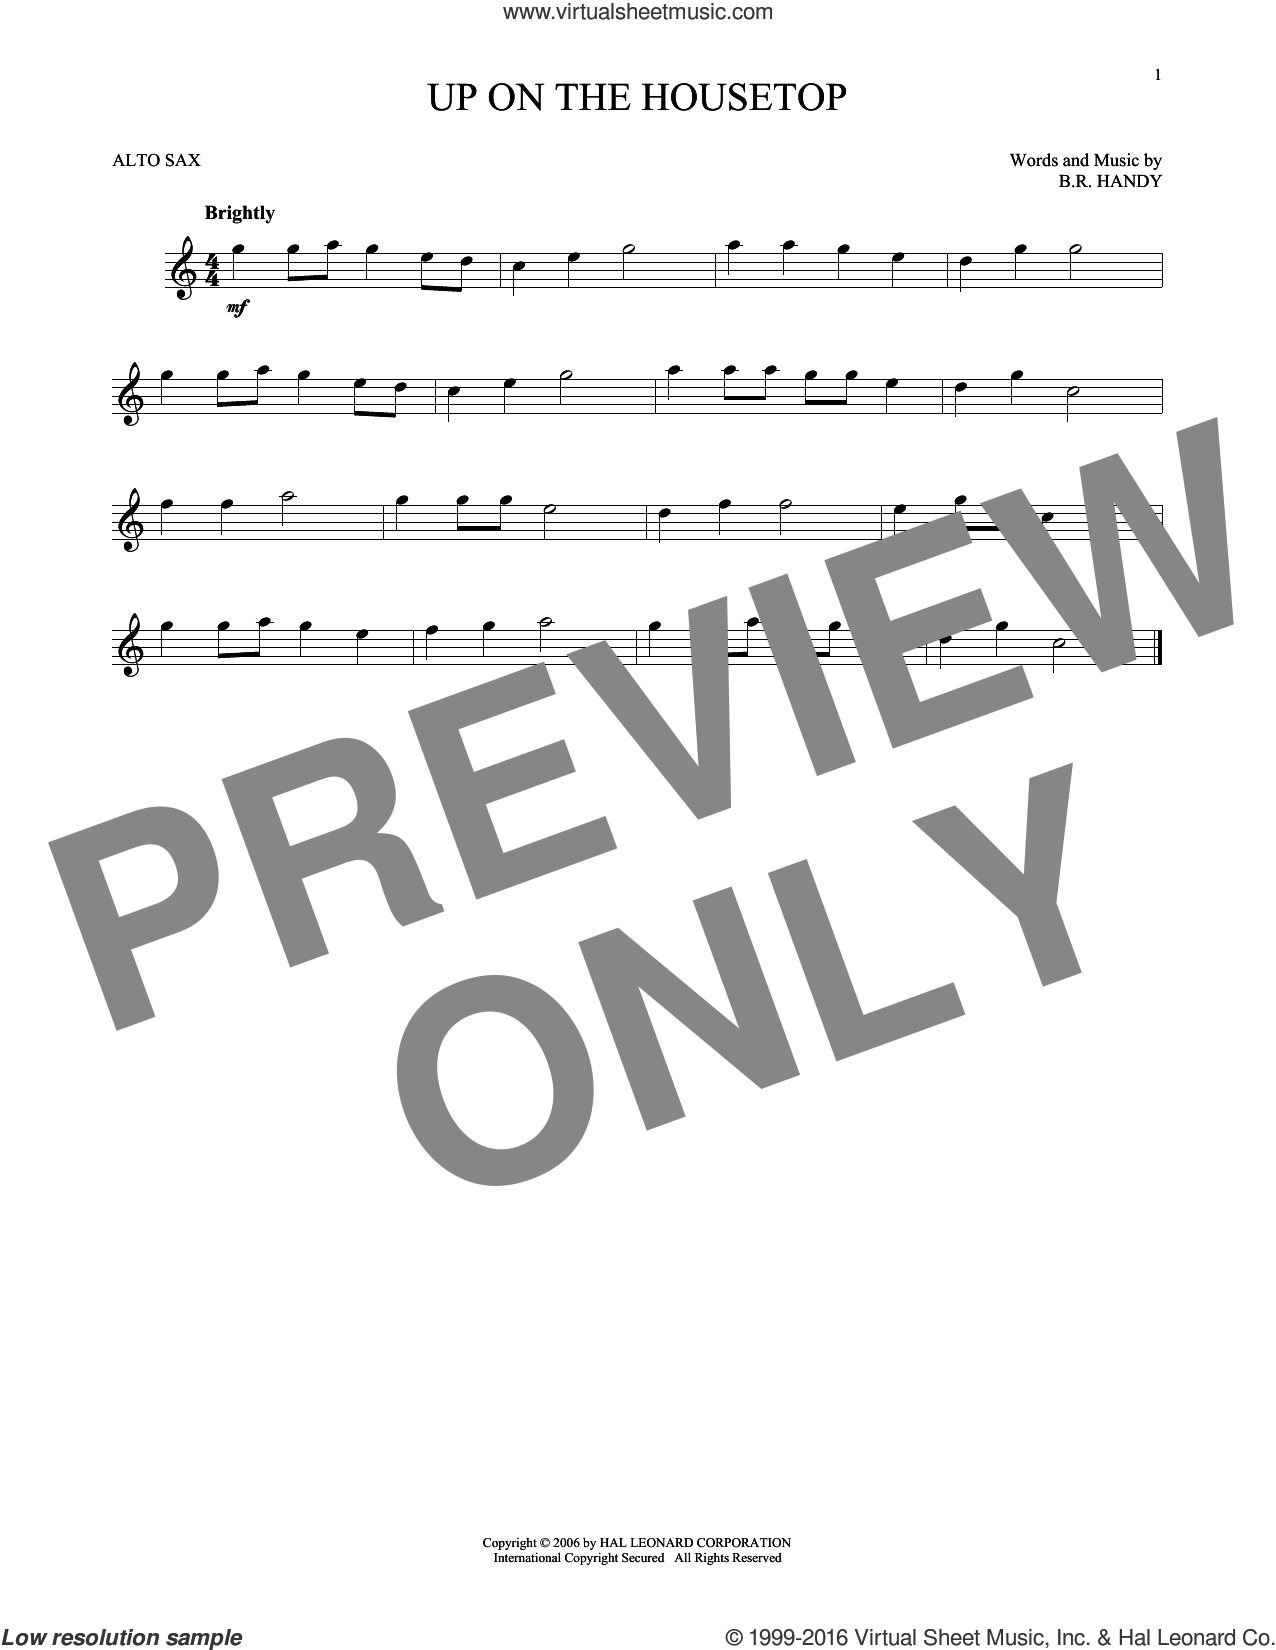 Up On The Housetop sheet music for alto saxophone solo by Benjamin Hanby, intermediate skill level